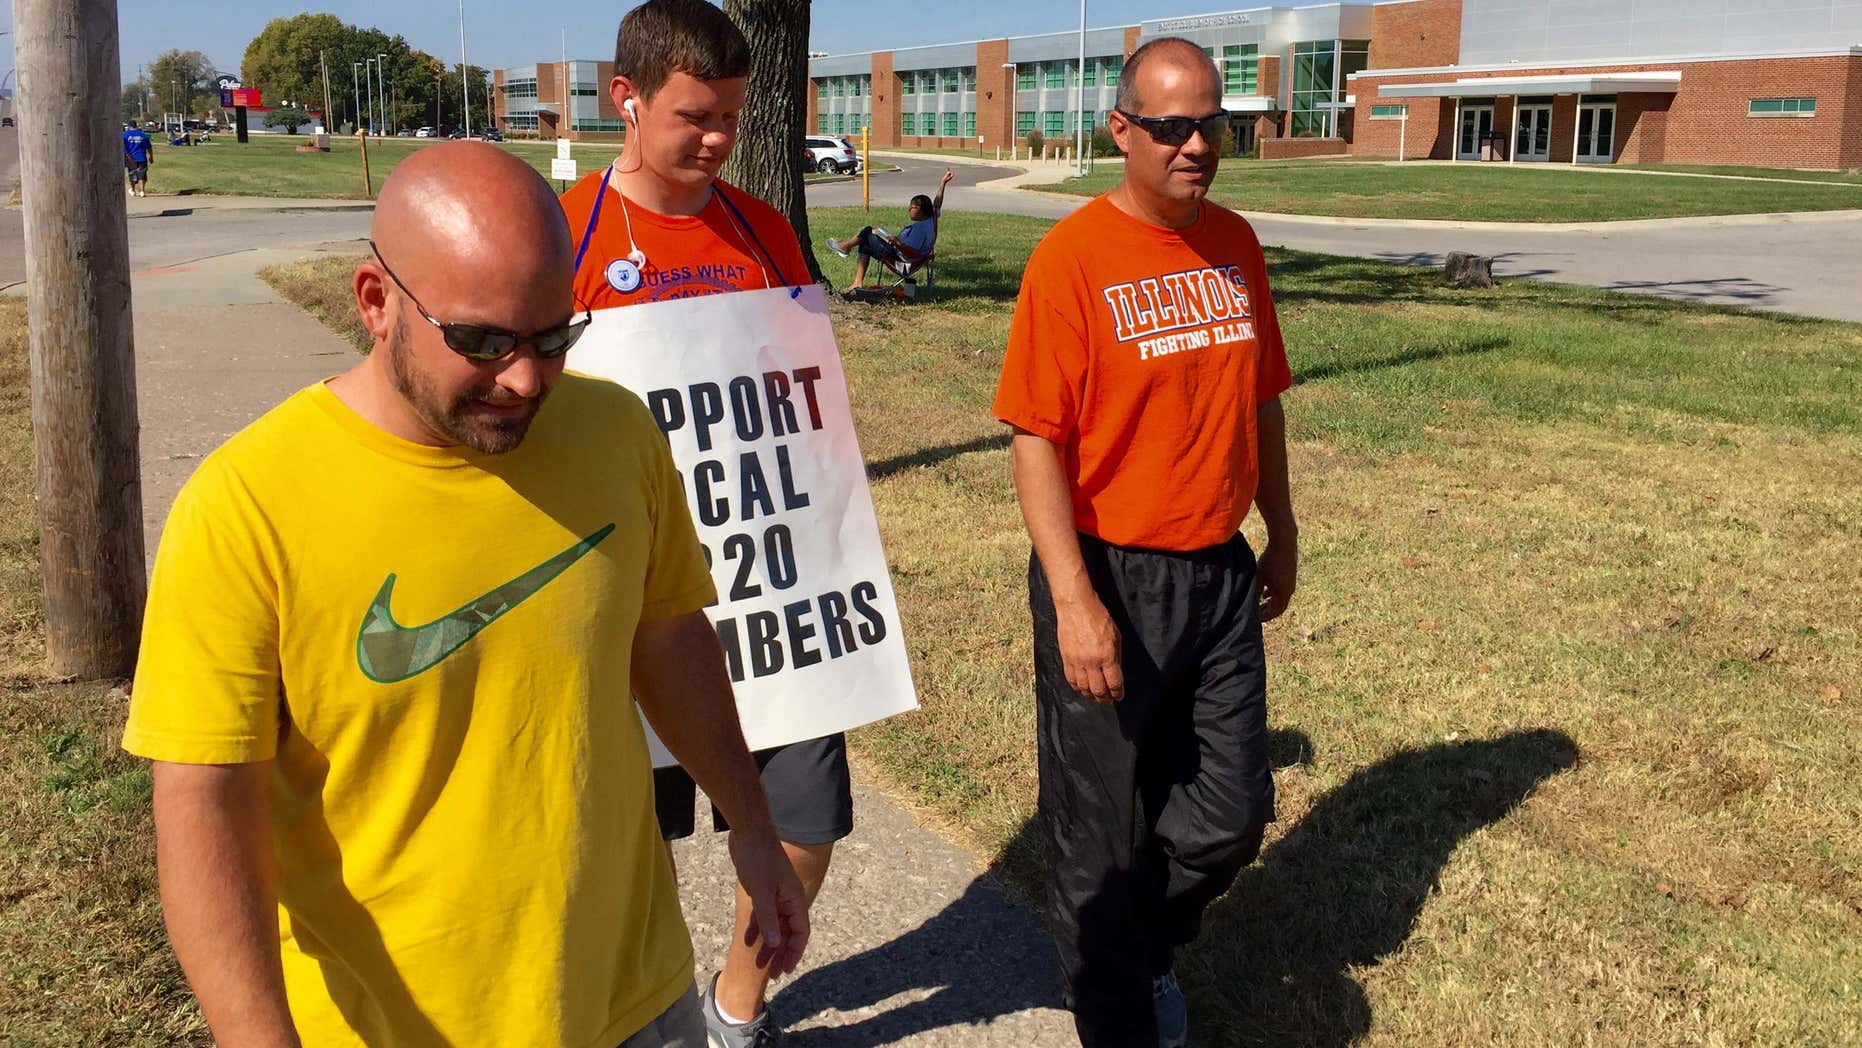 FILE - In this Oct. 27, 2015 file photo striking East St. Louis teachers, from left, Jeff Schneider, Josh Cummins and Paul Thies walk the picket line in front of East St. Louis Senior High School in East St. Louis, Ill.